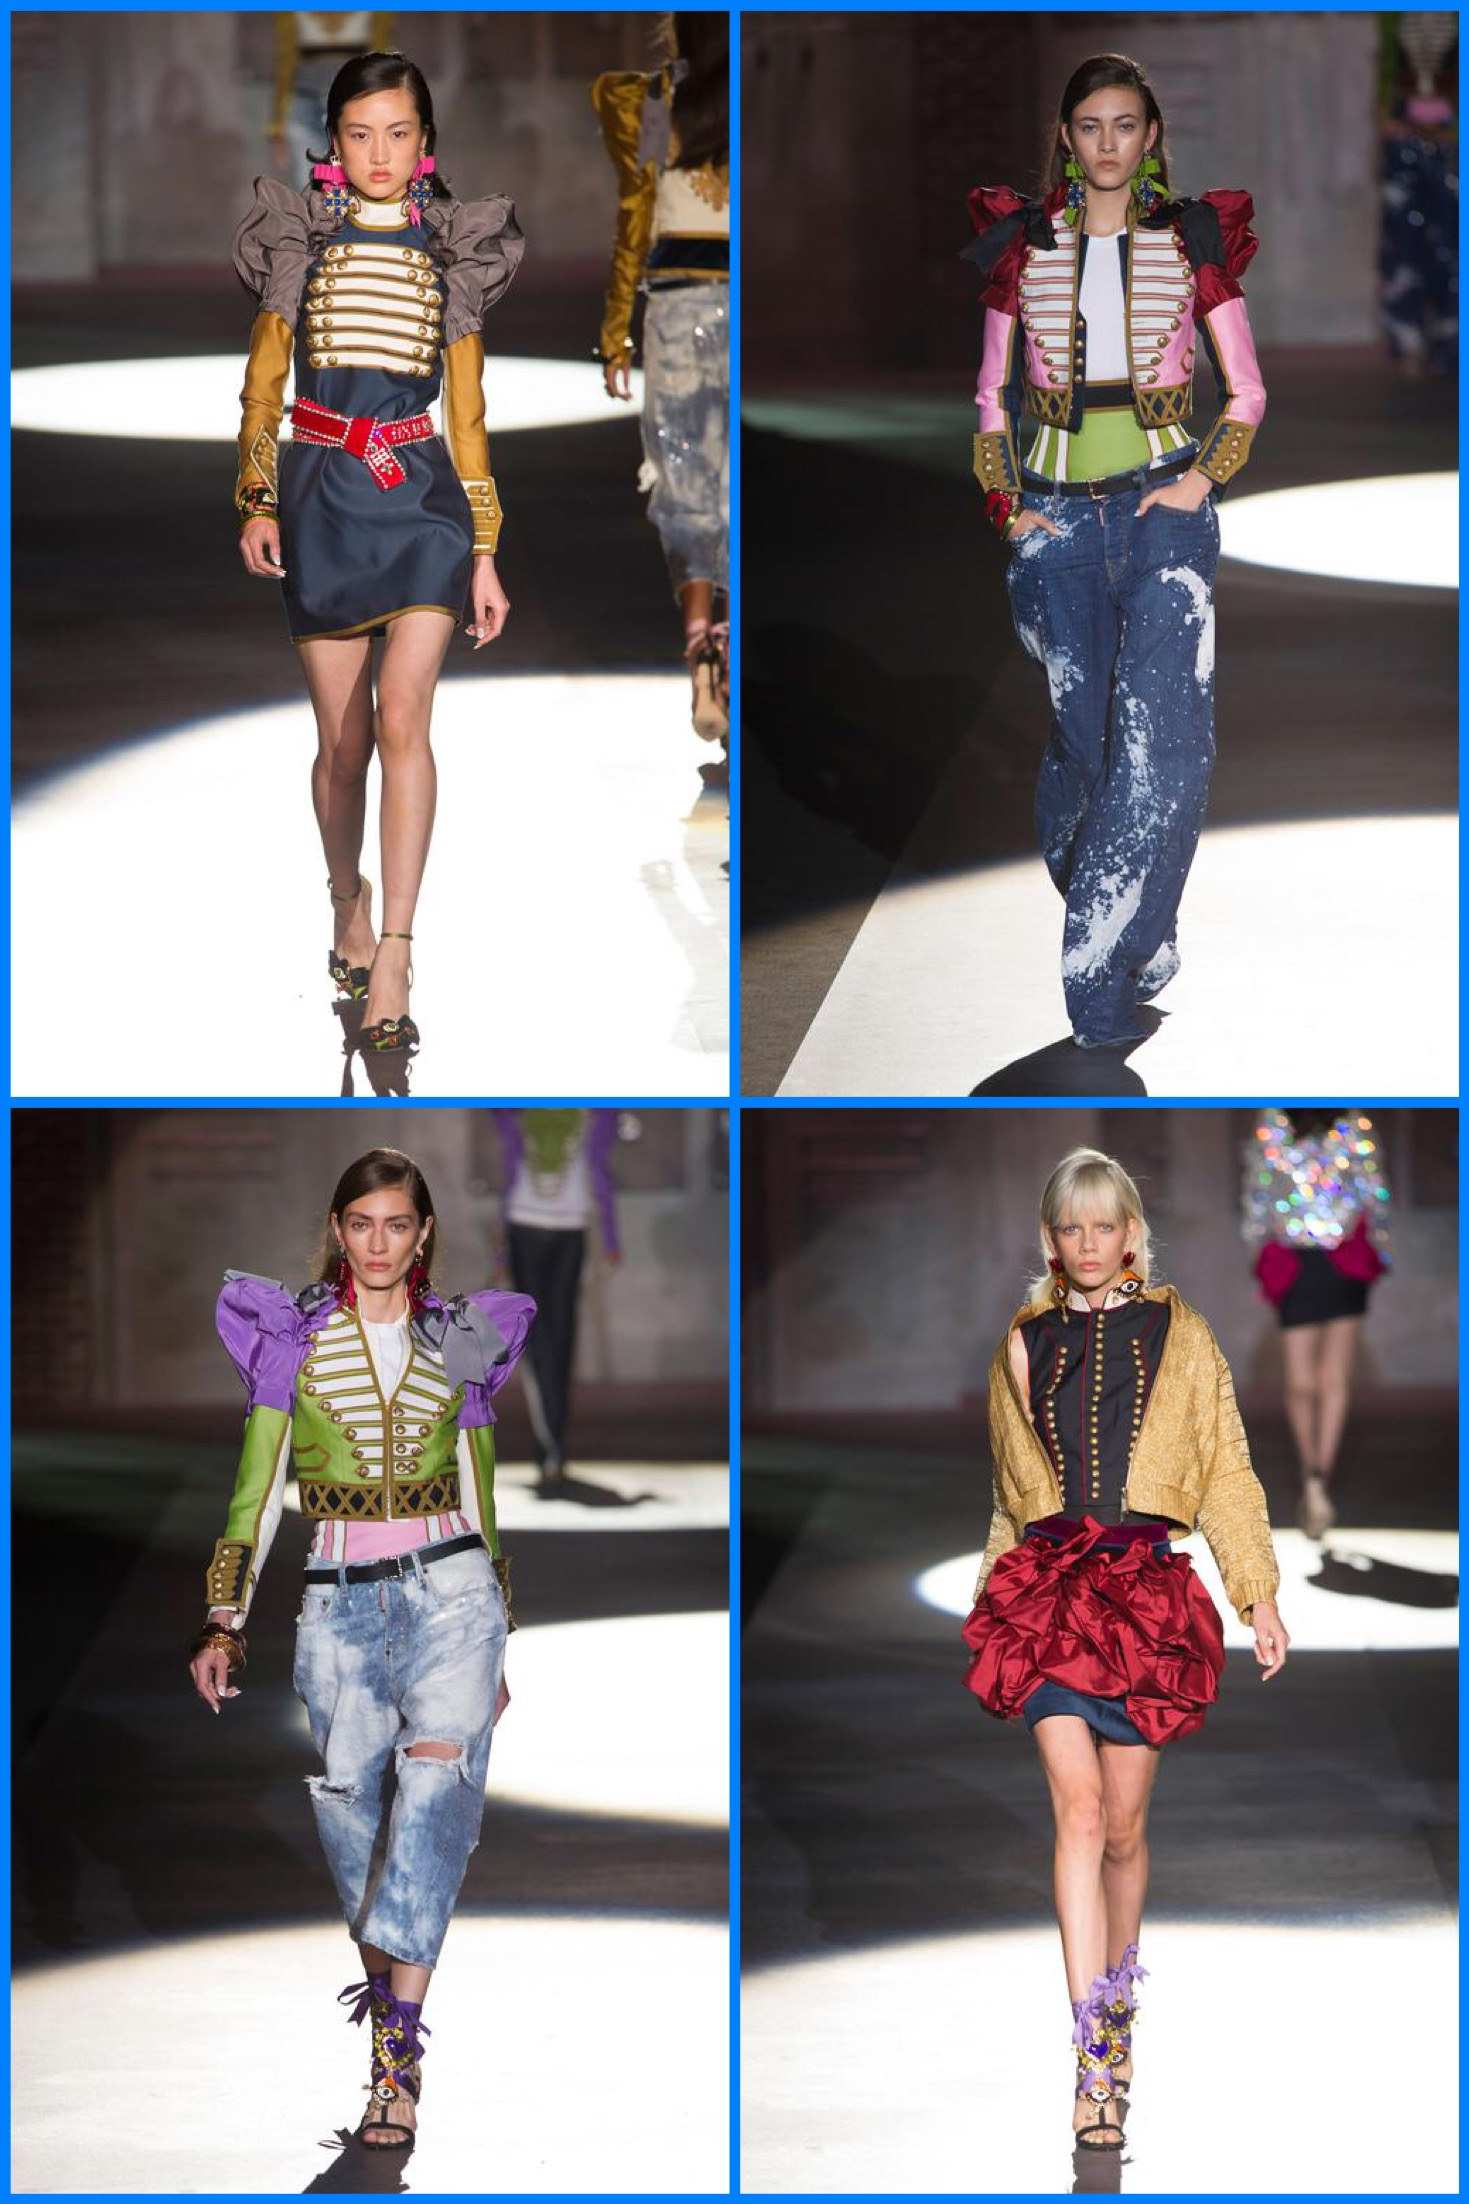 milano-fashion-week-pret-a-porter-spring-summer-2017-style-dsquared%c2%b2